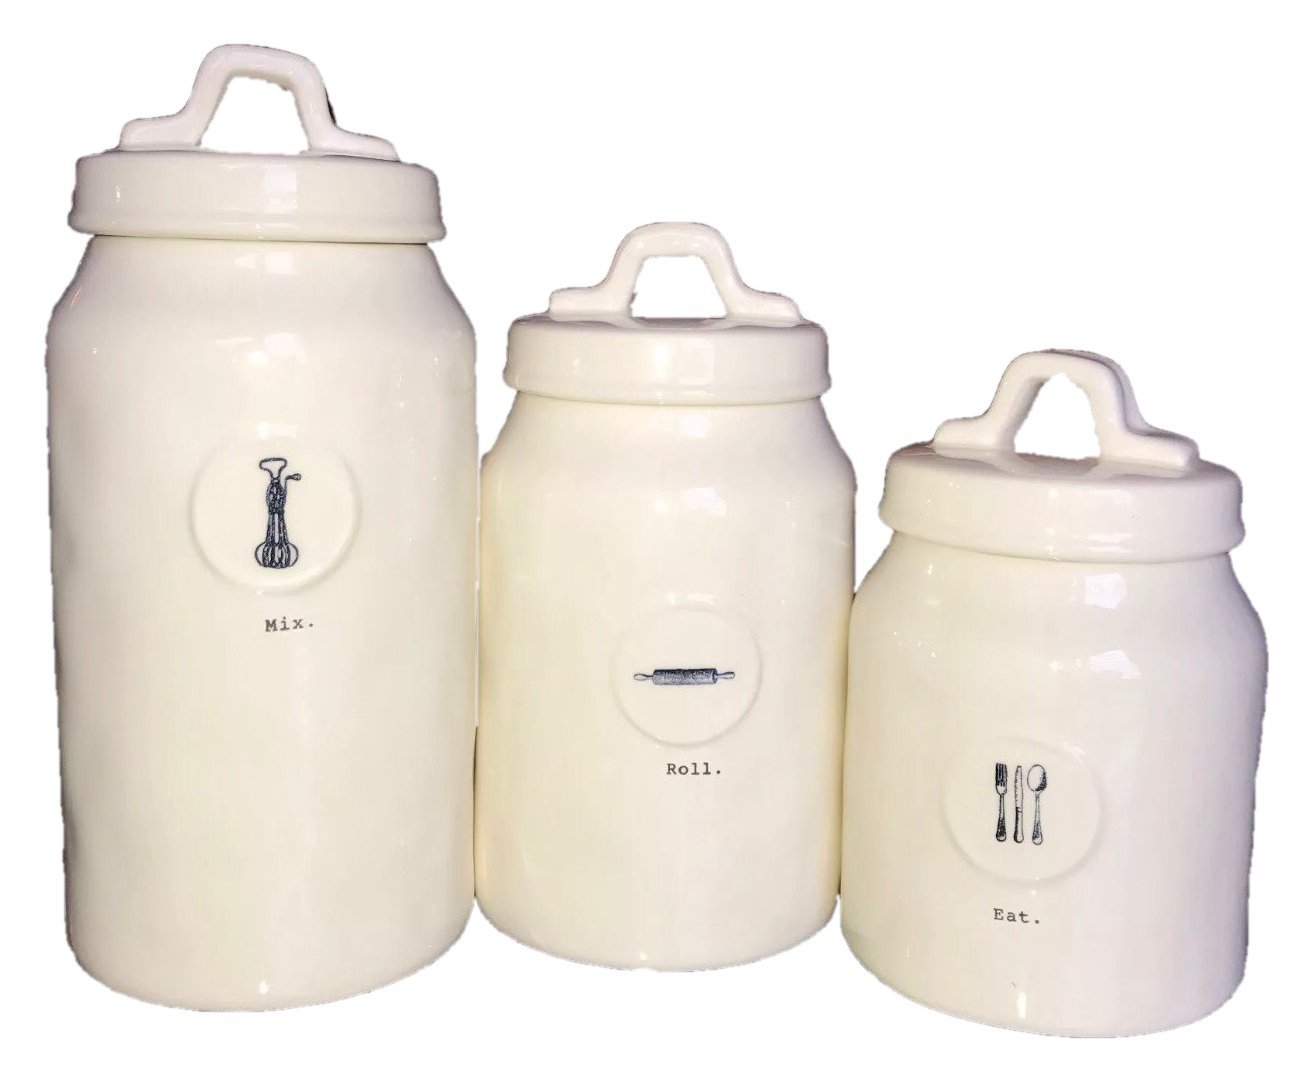 Rae Dunn by Magenta Ceramic Icon Canister Set, Mix, Roll, Eat 3-piece Set